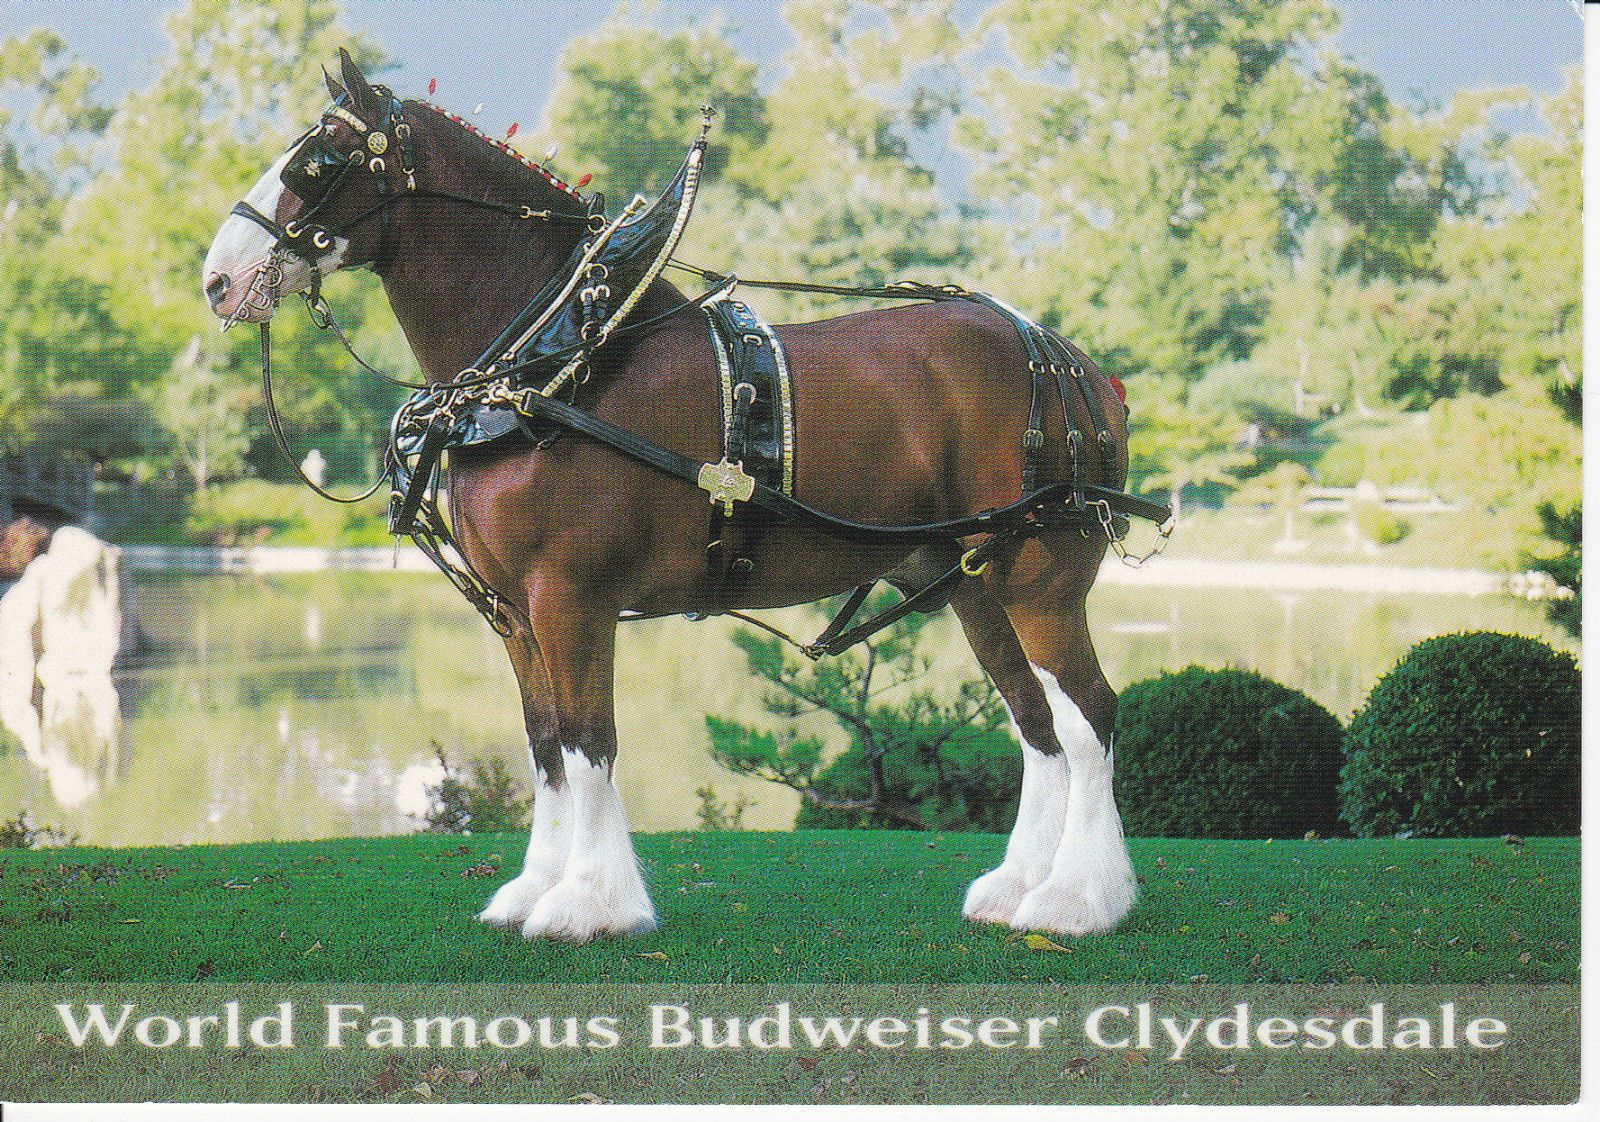 BUDWEISER BREWERY CLYDESDALE DRAFT HORSE POSTCARD HANDSOME FELLOW HARNESS POND picclick.com